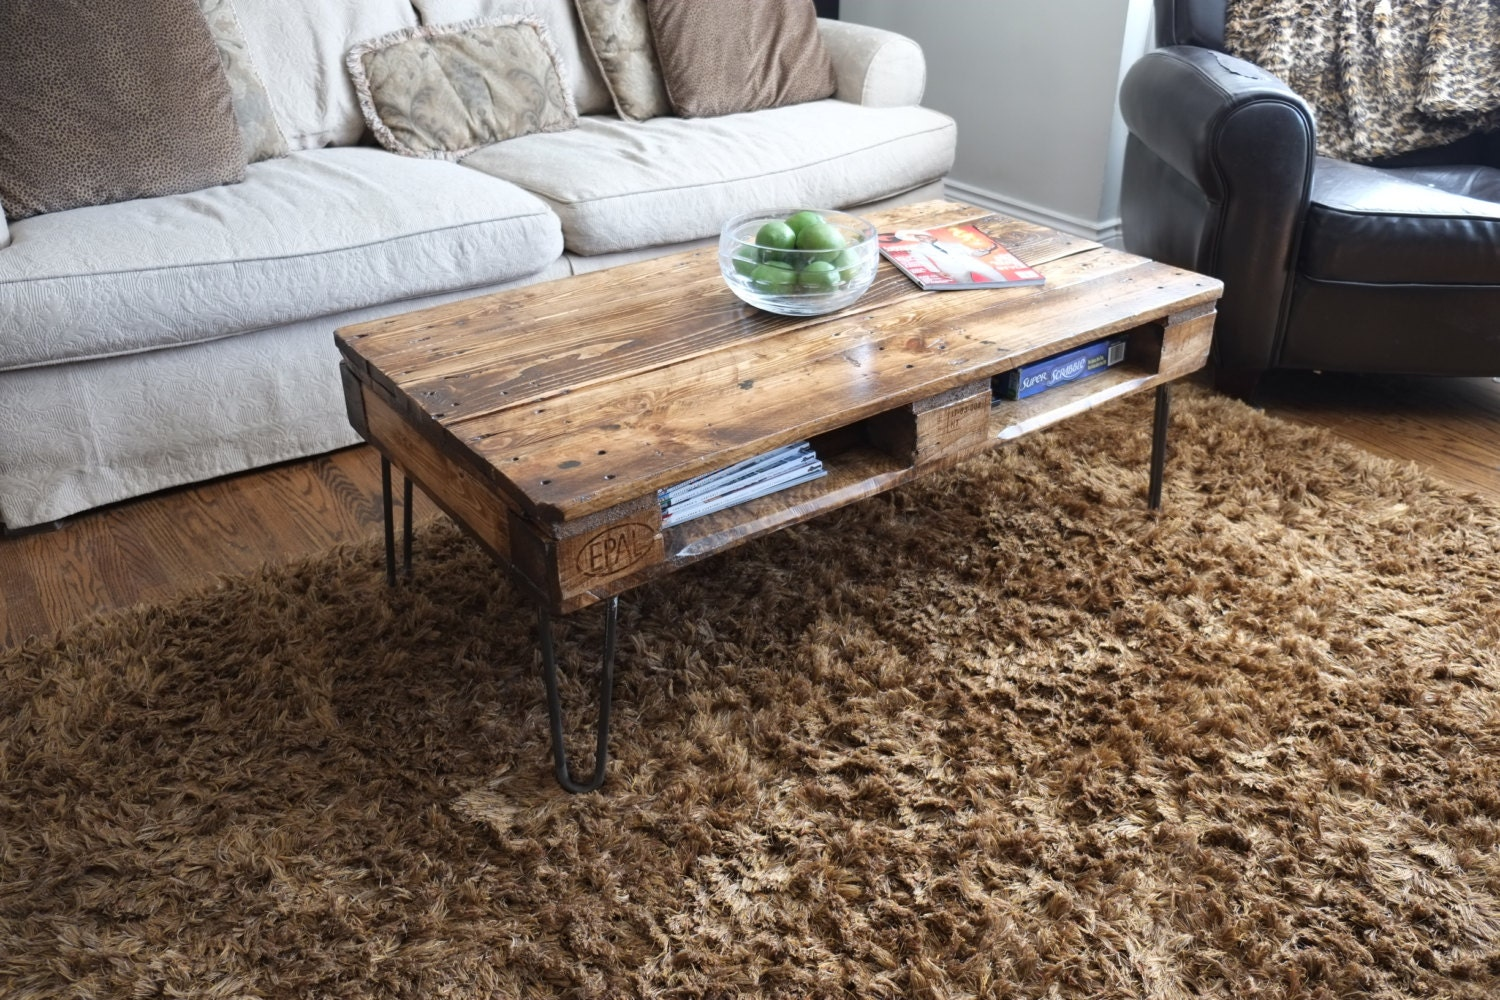 Antique Pallet Or Skid Coffee Tables On Hairpin Legs